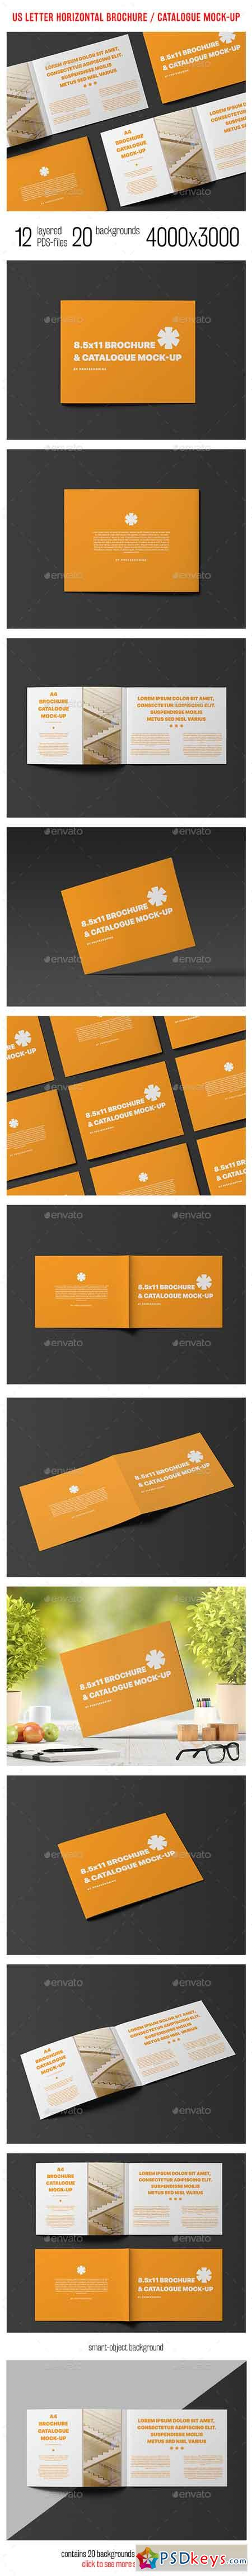 US Letter Horizontal Catalogue Brochure Mock-Up 14453345